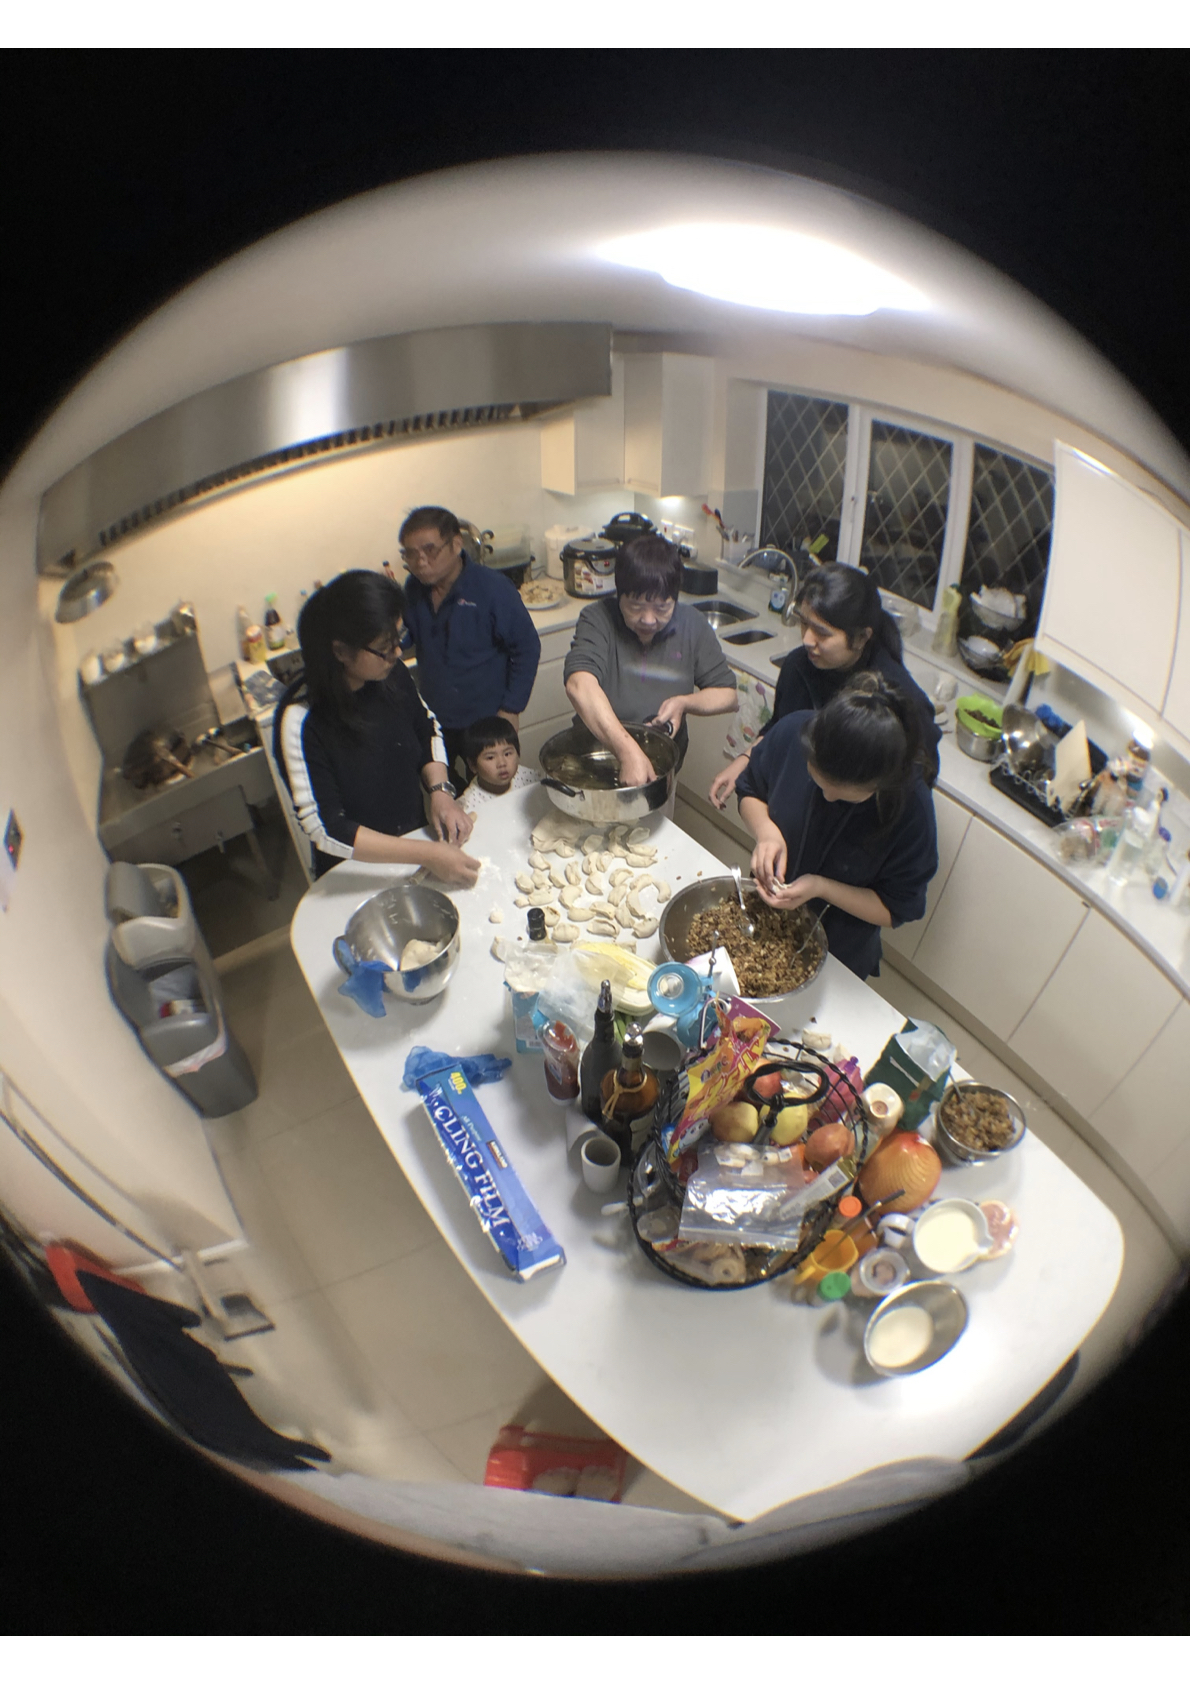 In my photography, I chose to use a fisheye lens on my camera to get a fuller picture of what I was capturing. I depict my experience of the whole family gathered around the island, each person taking on a different role in the dumpling making process. I like the effect the fisheye lens has on the photo as it gives the whole photo a sense of togetherness and 'interconnectivity' meanwhile representing the annual nature of the popular Chinese New Year festival and mid-autumn festival. - Karen Chen